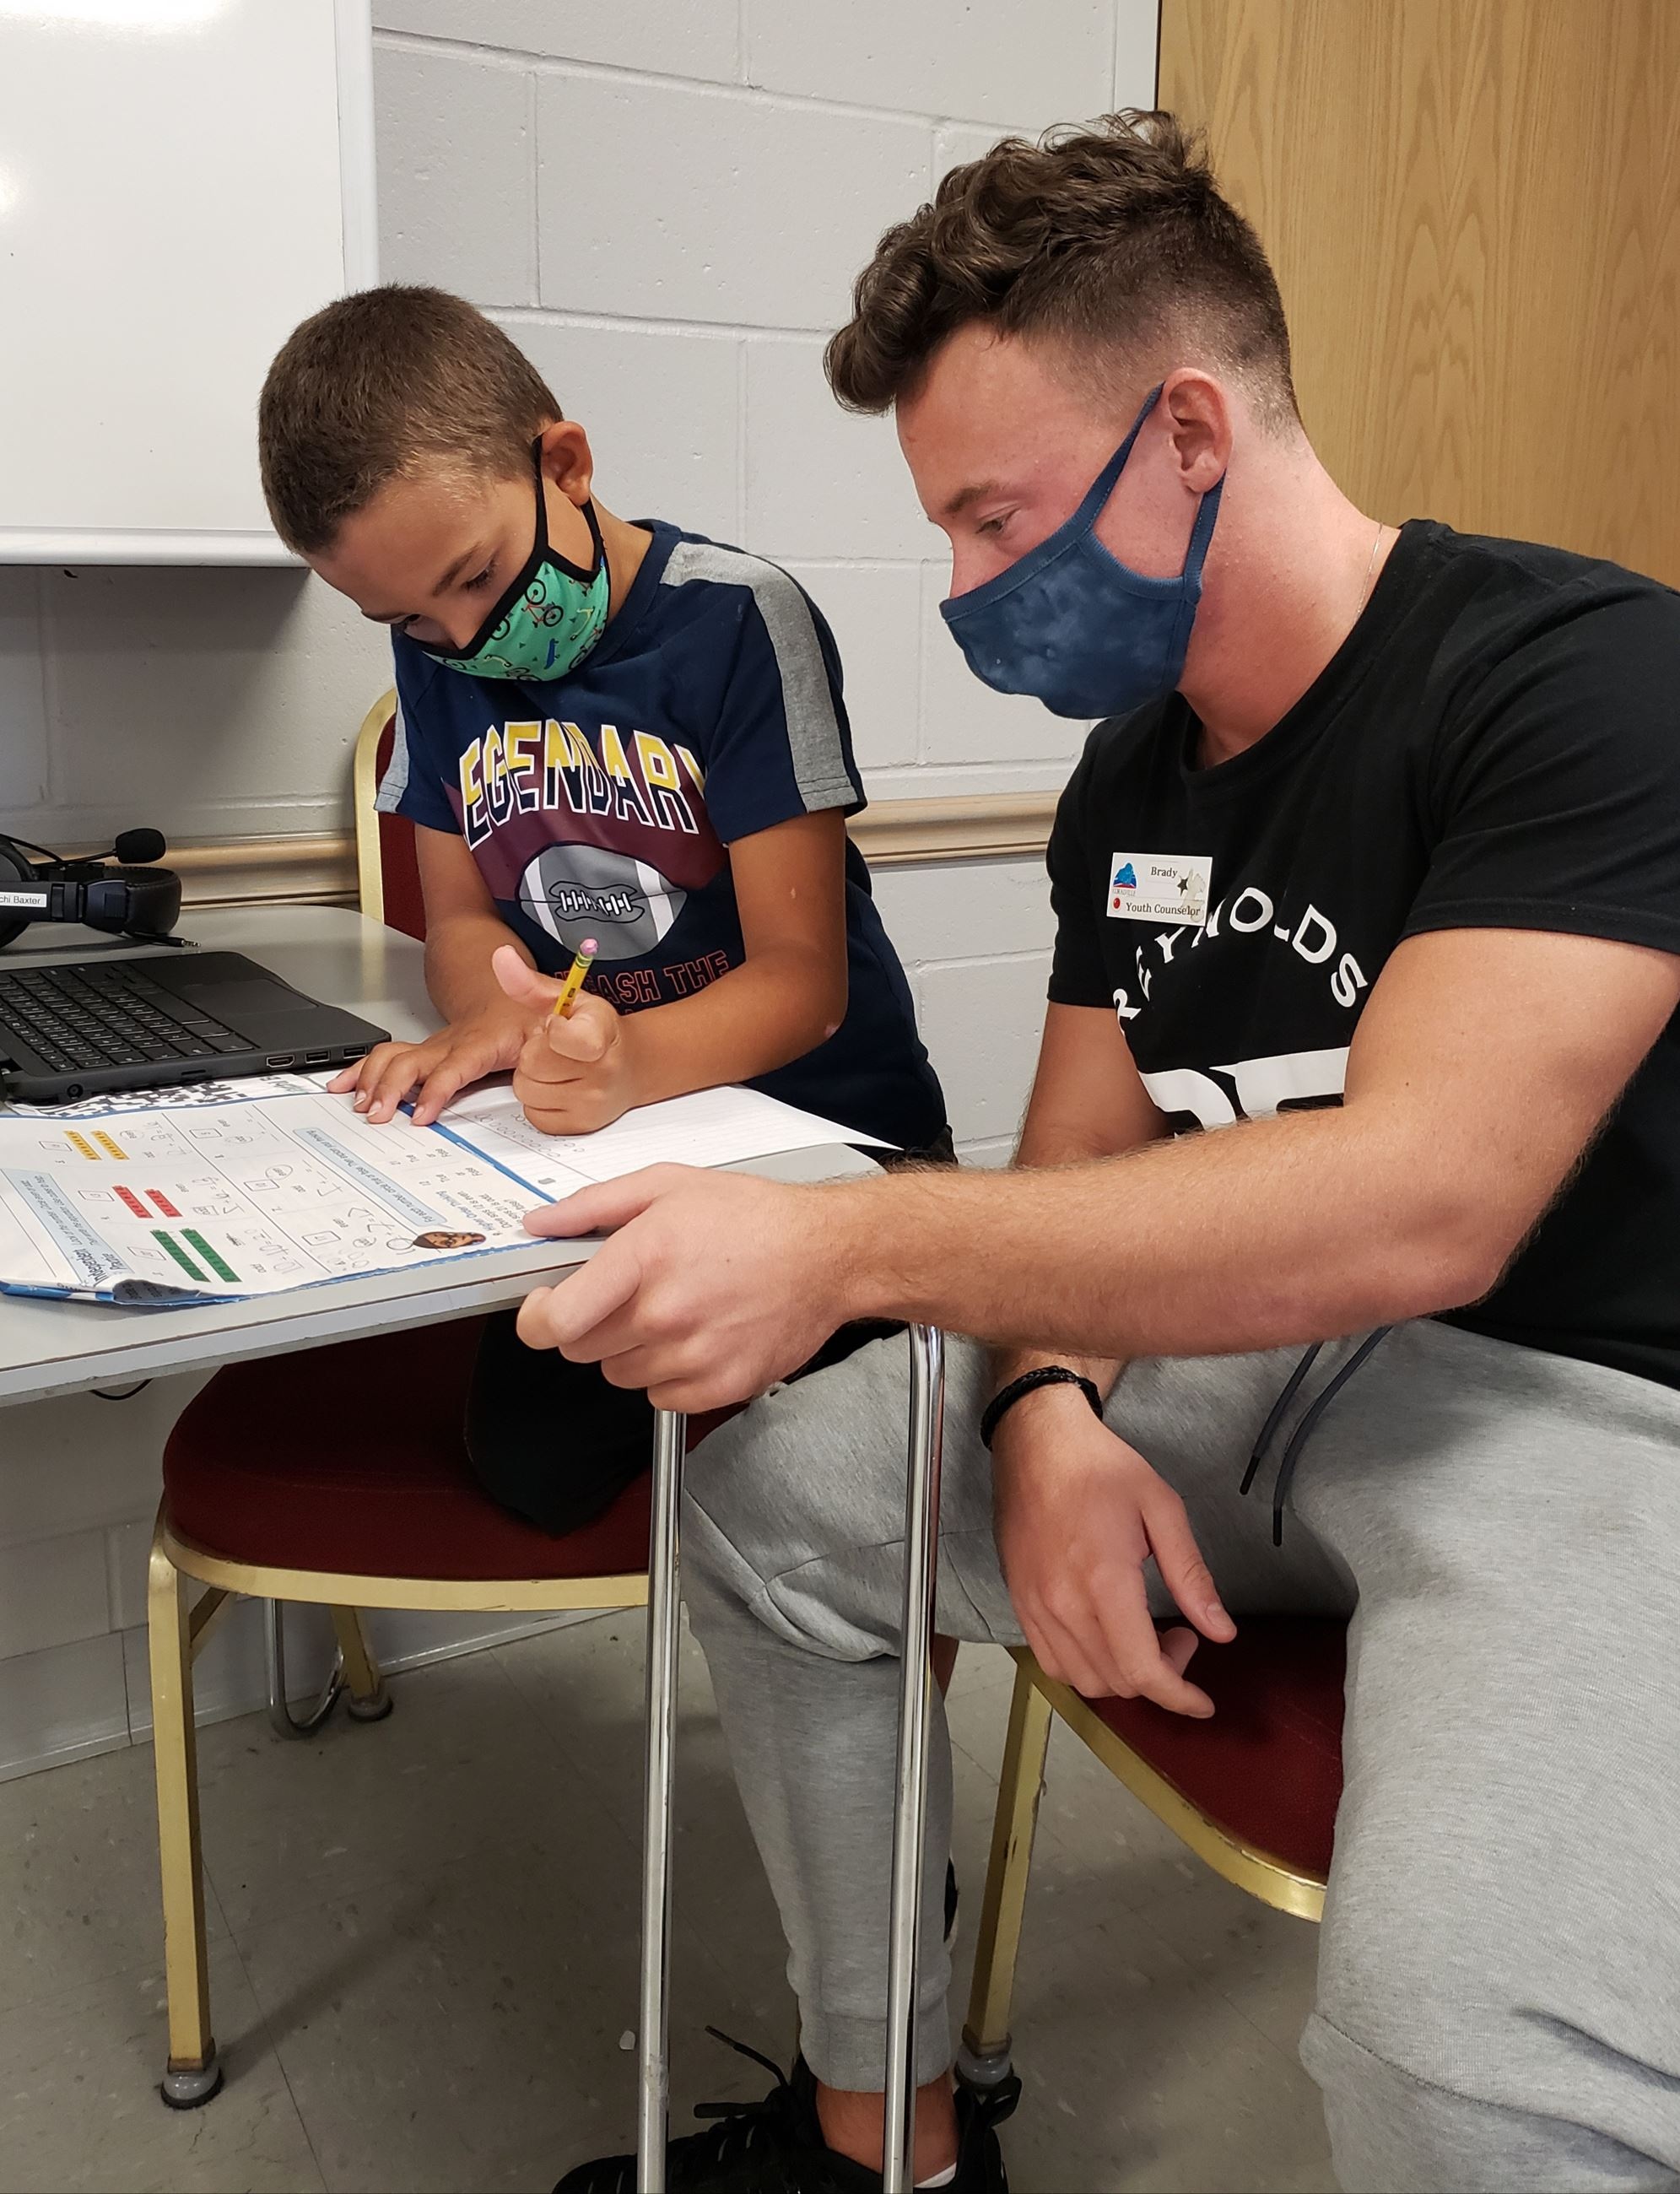 Youth Counselor helps student with homework